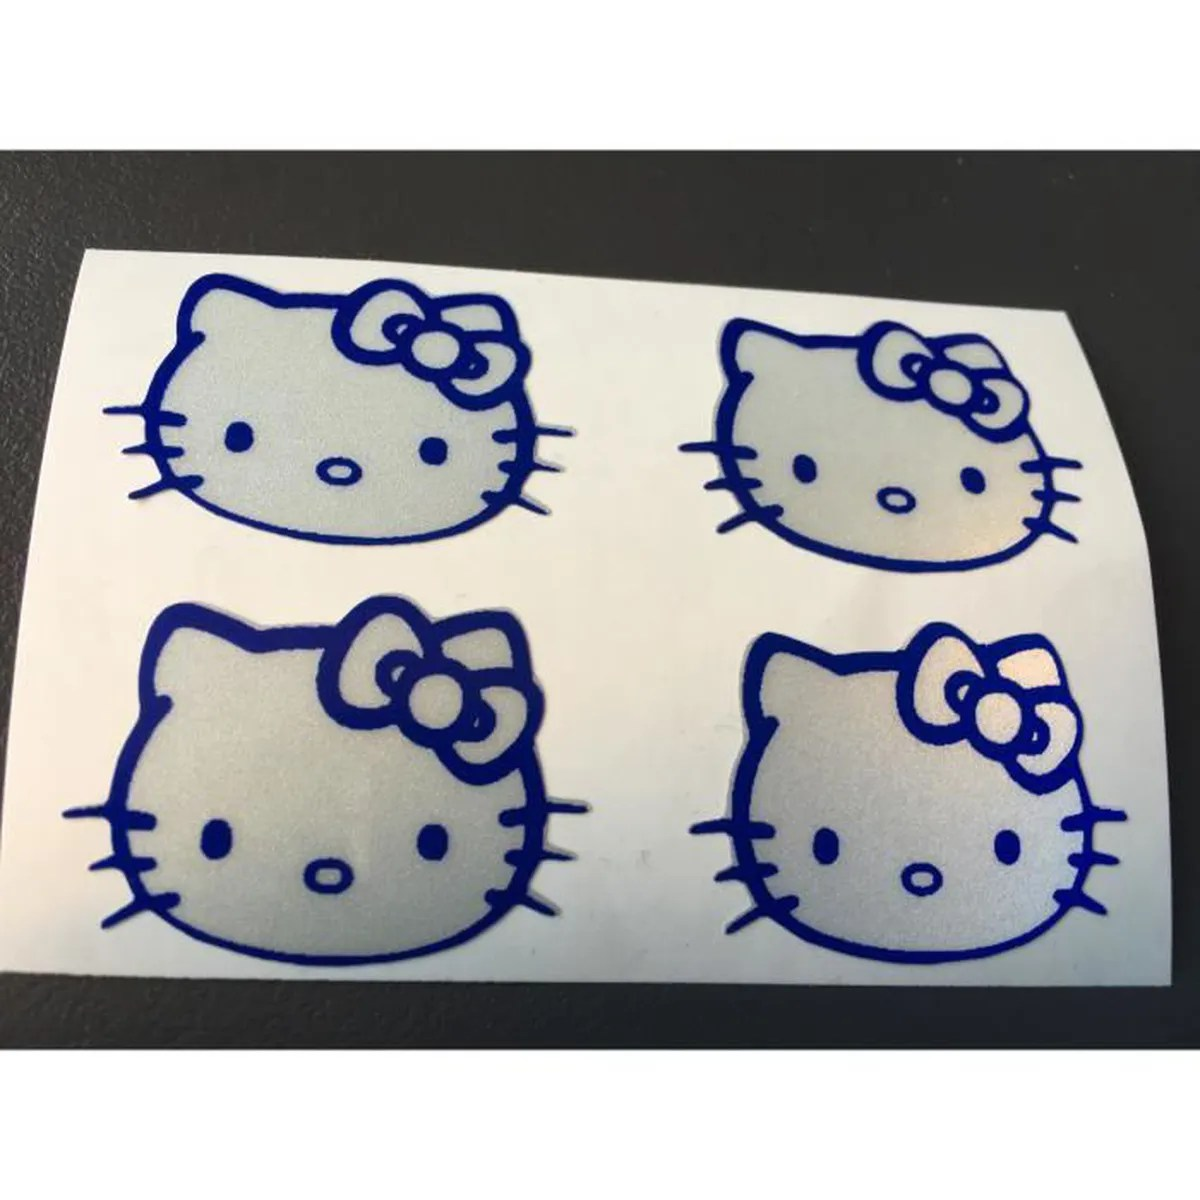 Chambre Hello Kitty Complet Stickers Hello Kitty Achat Vente Pas Cher